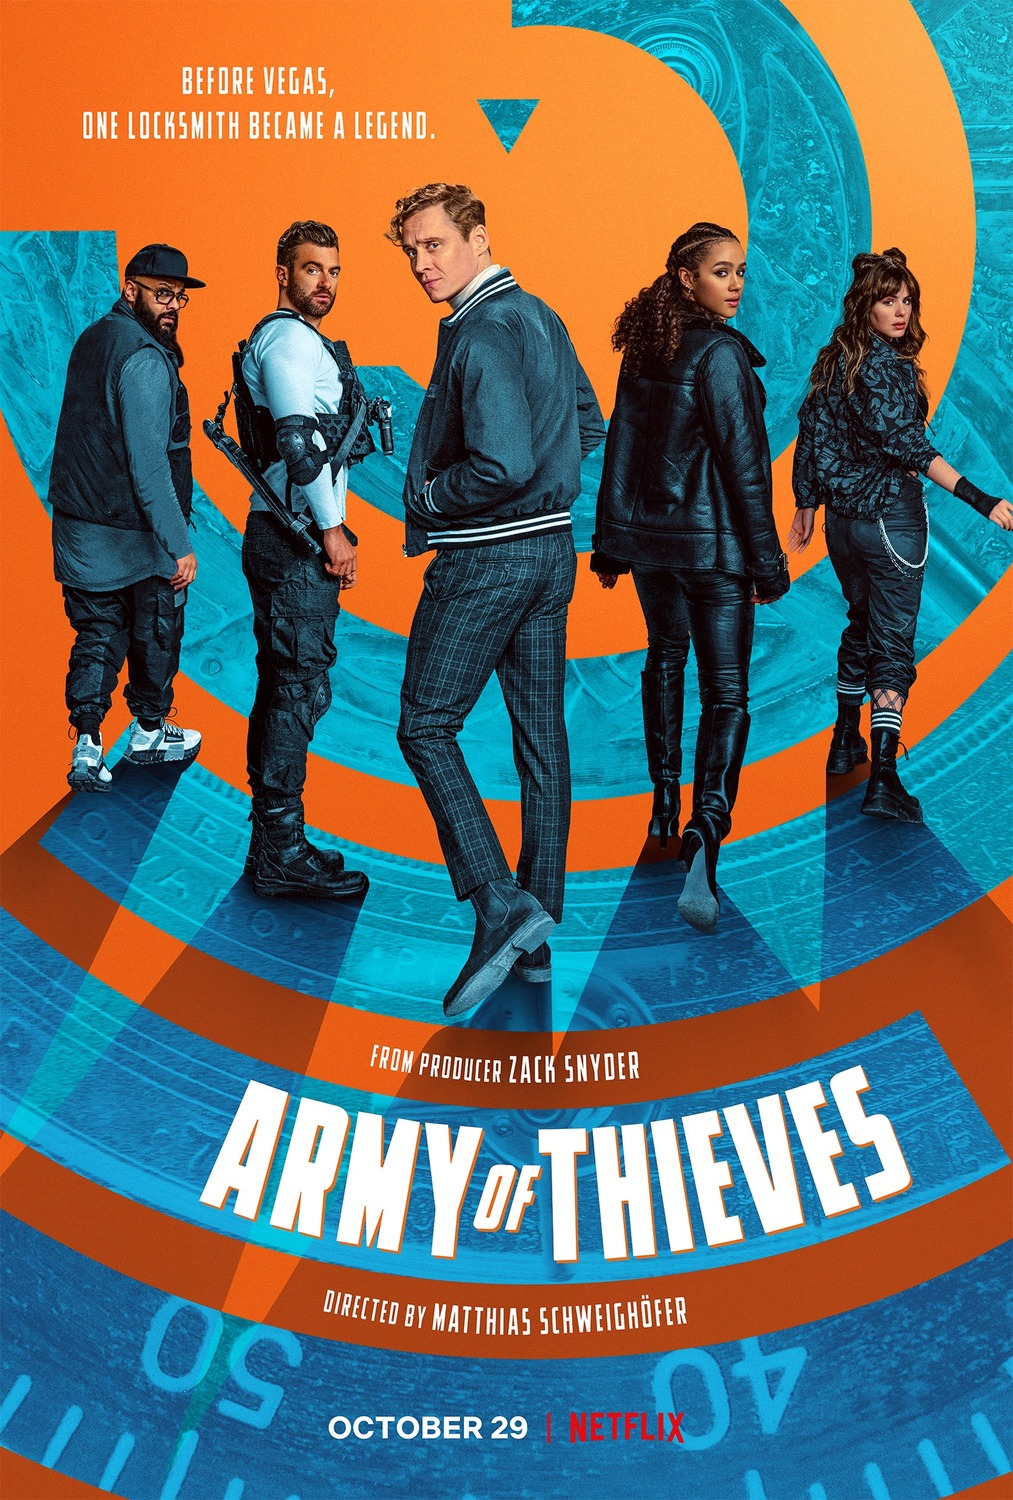 Army of Thieves (2021)